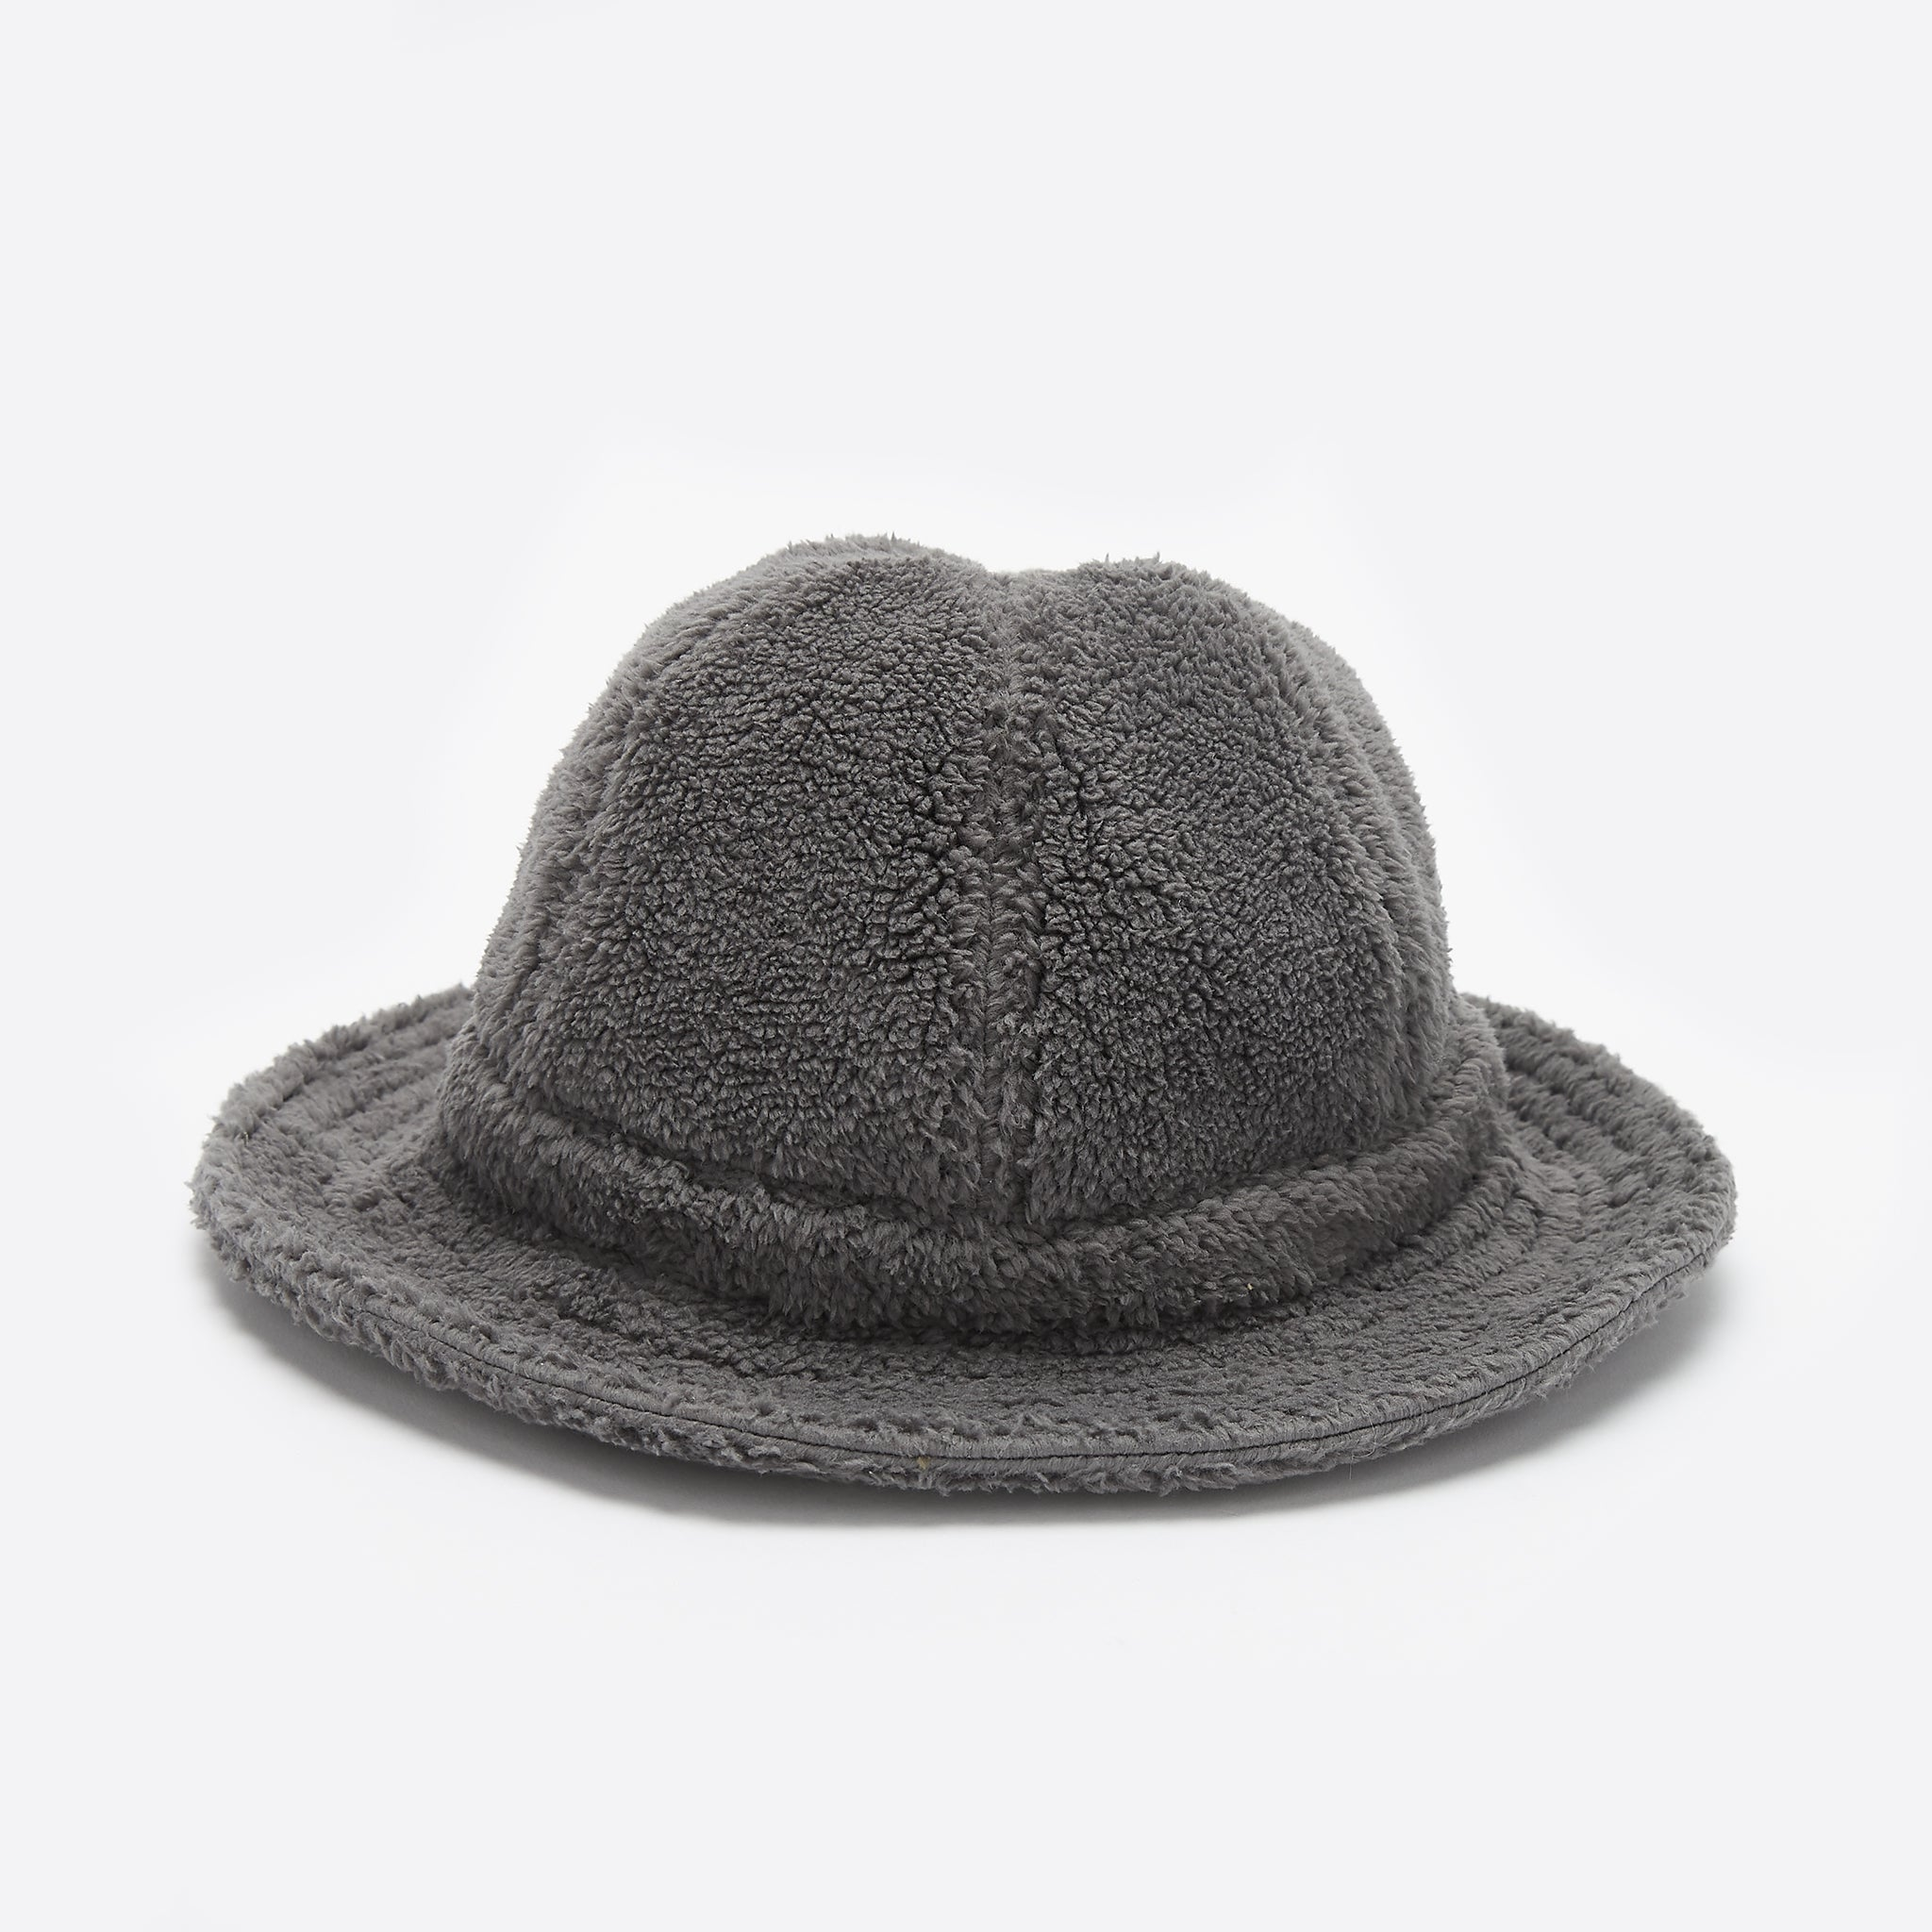 Câbleami Boa Fleece Metro Hat in Grey